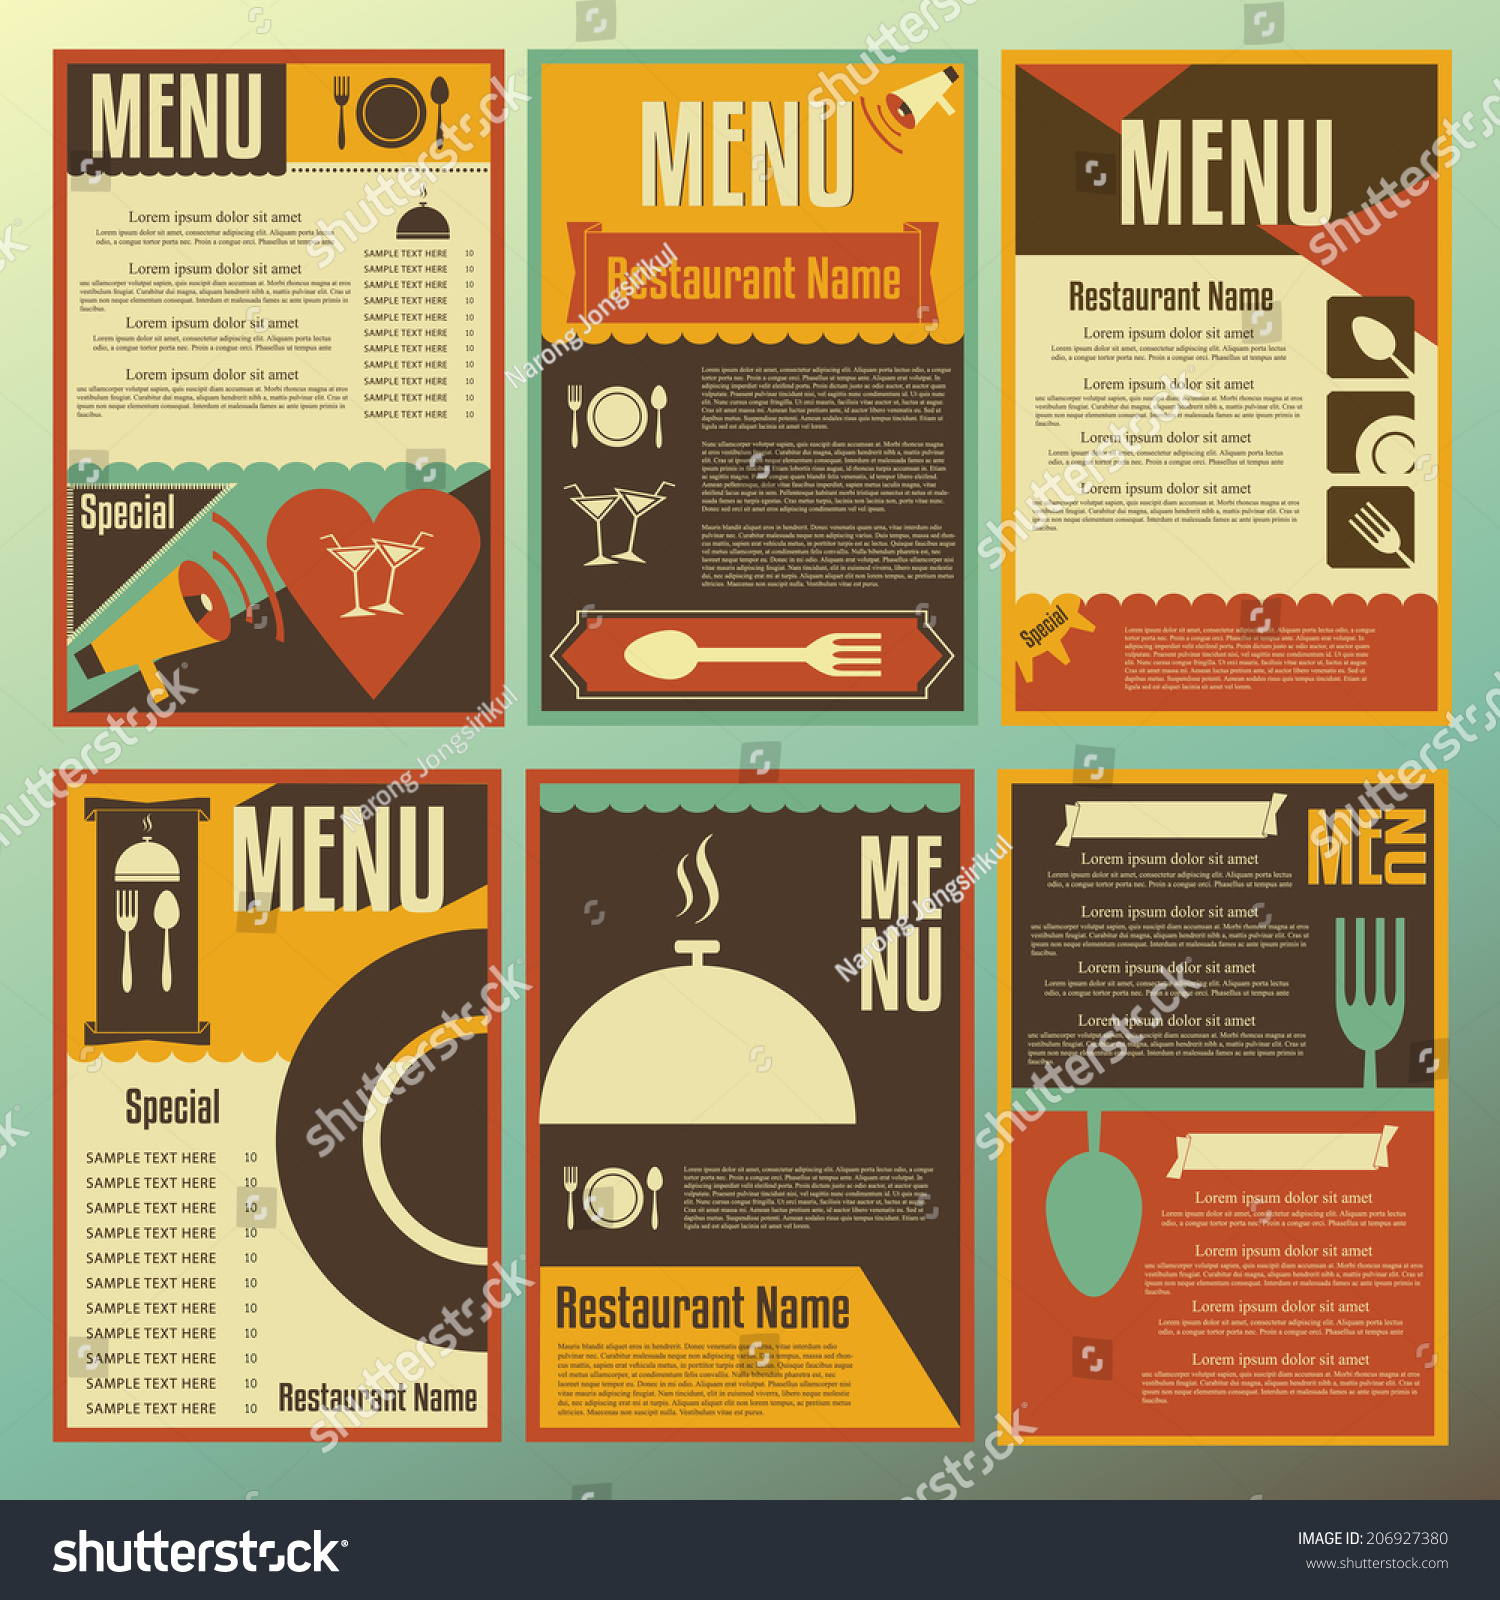 Restaurant menu designs collection of retro style vector